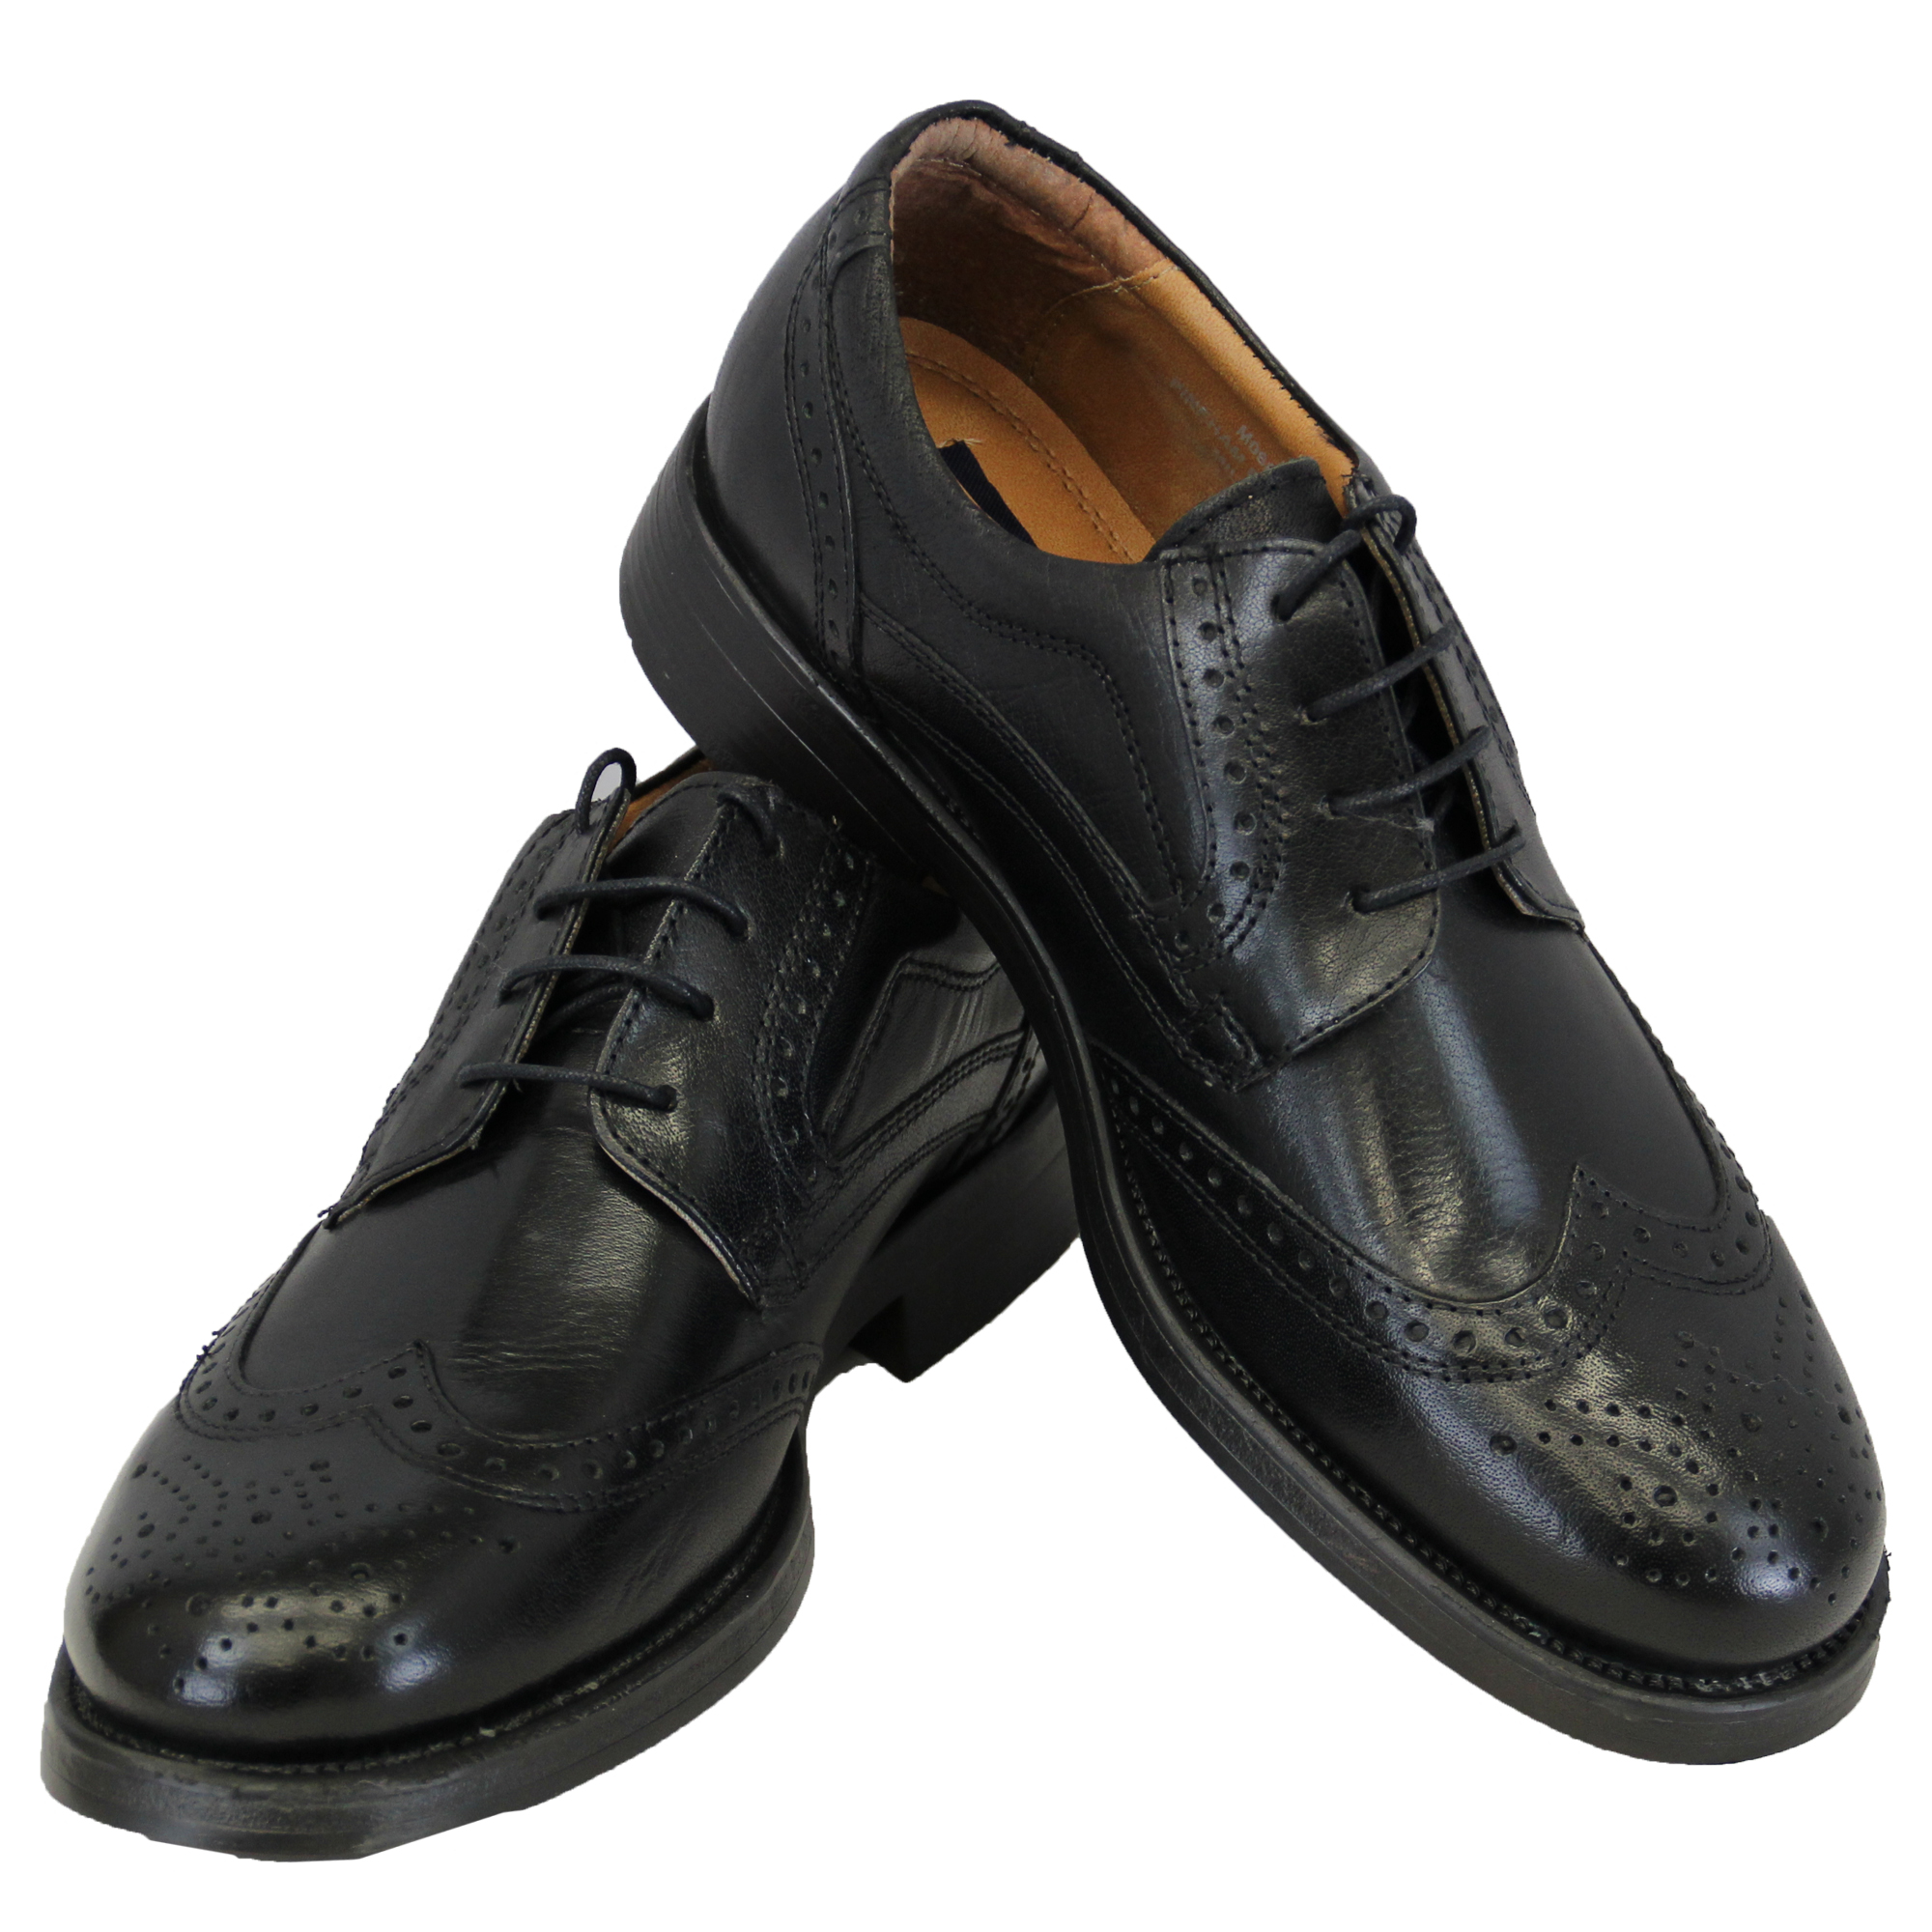 mens leather boots brogue lace up shoes formal casual